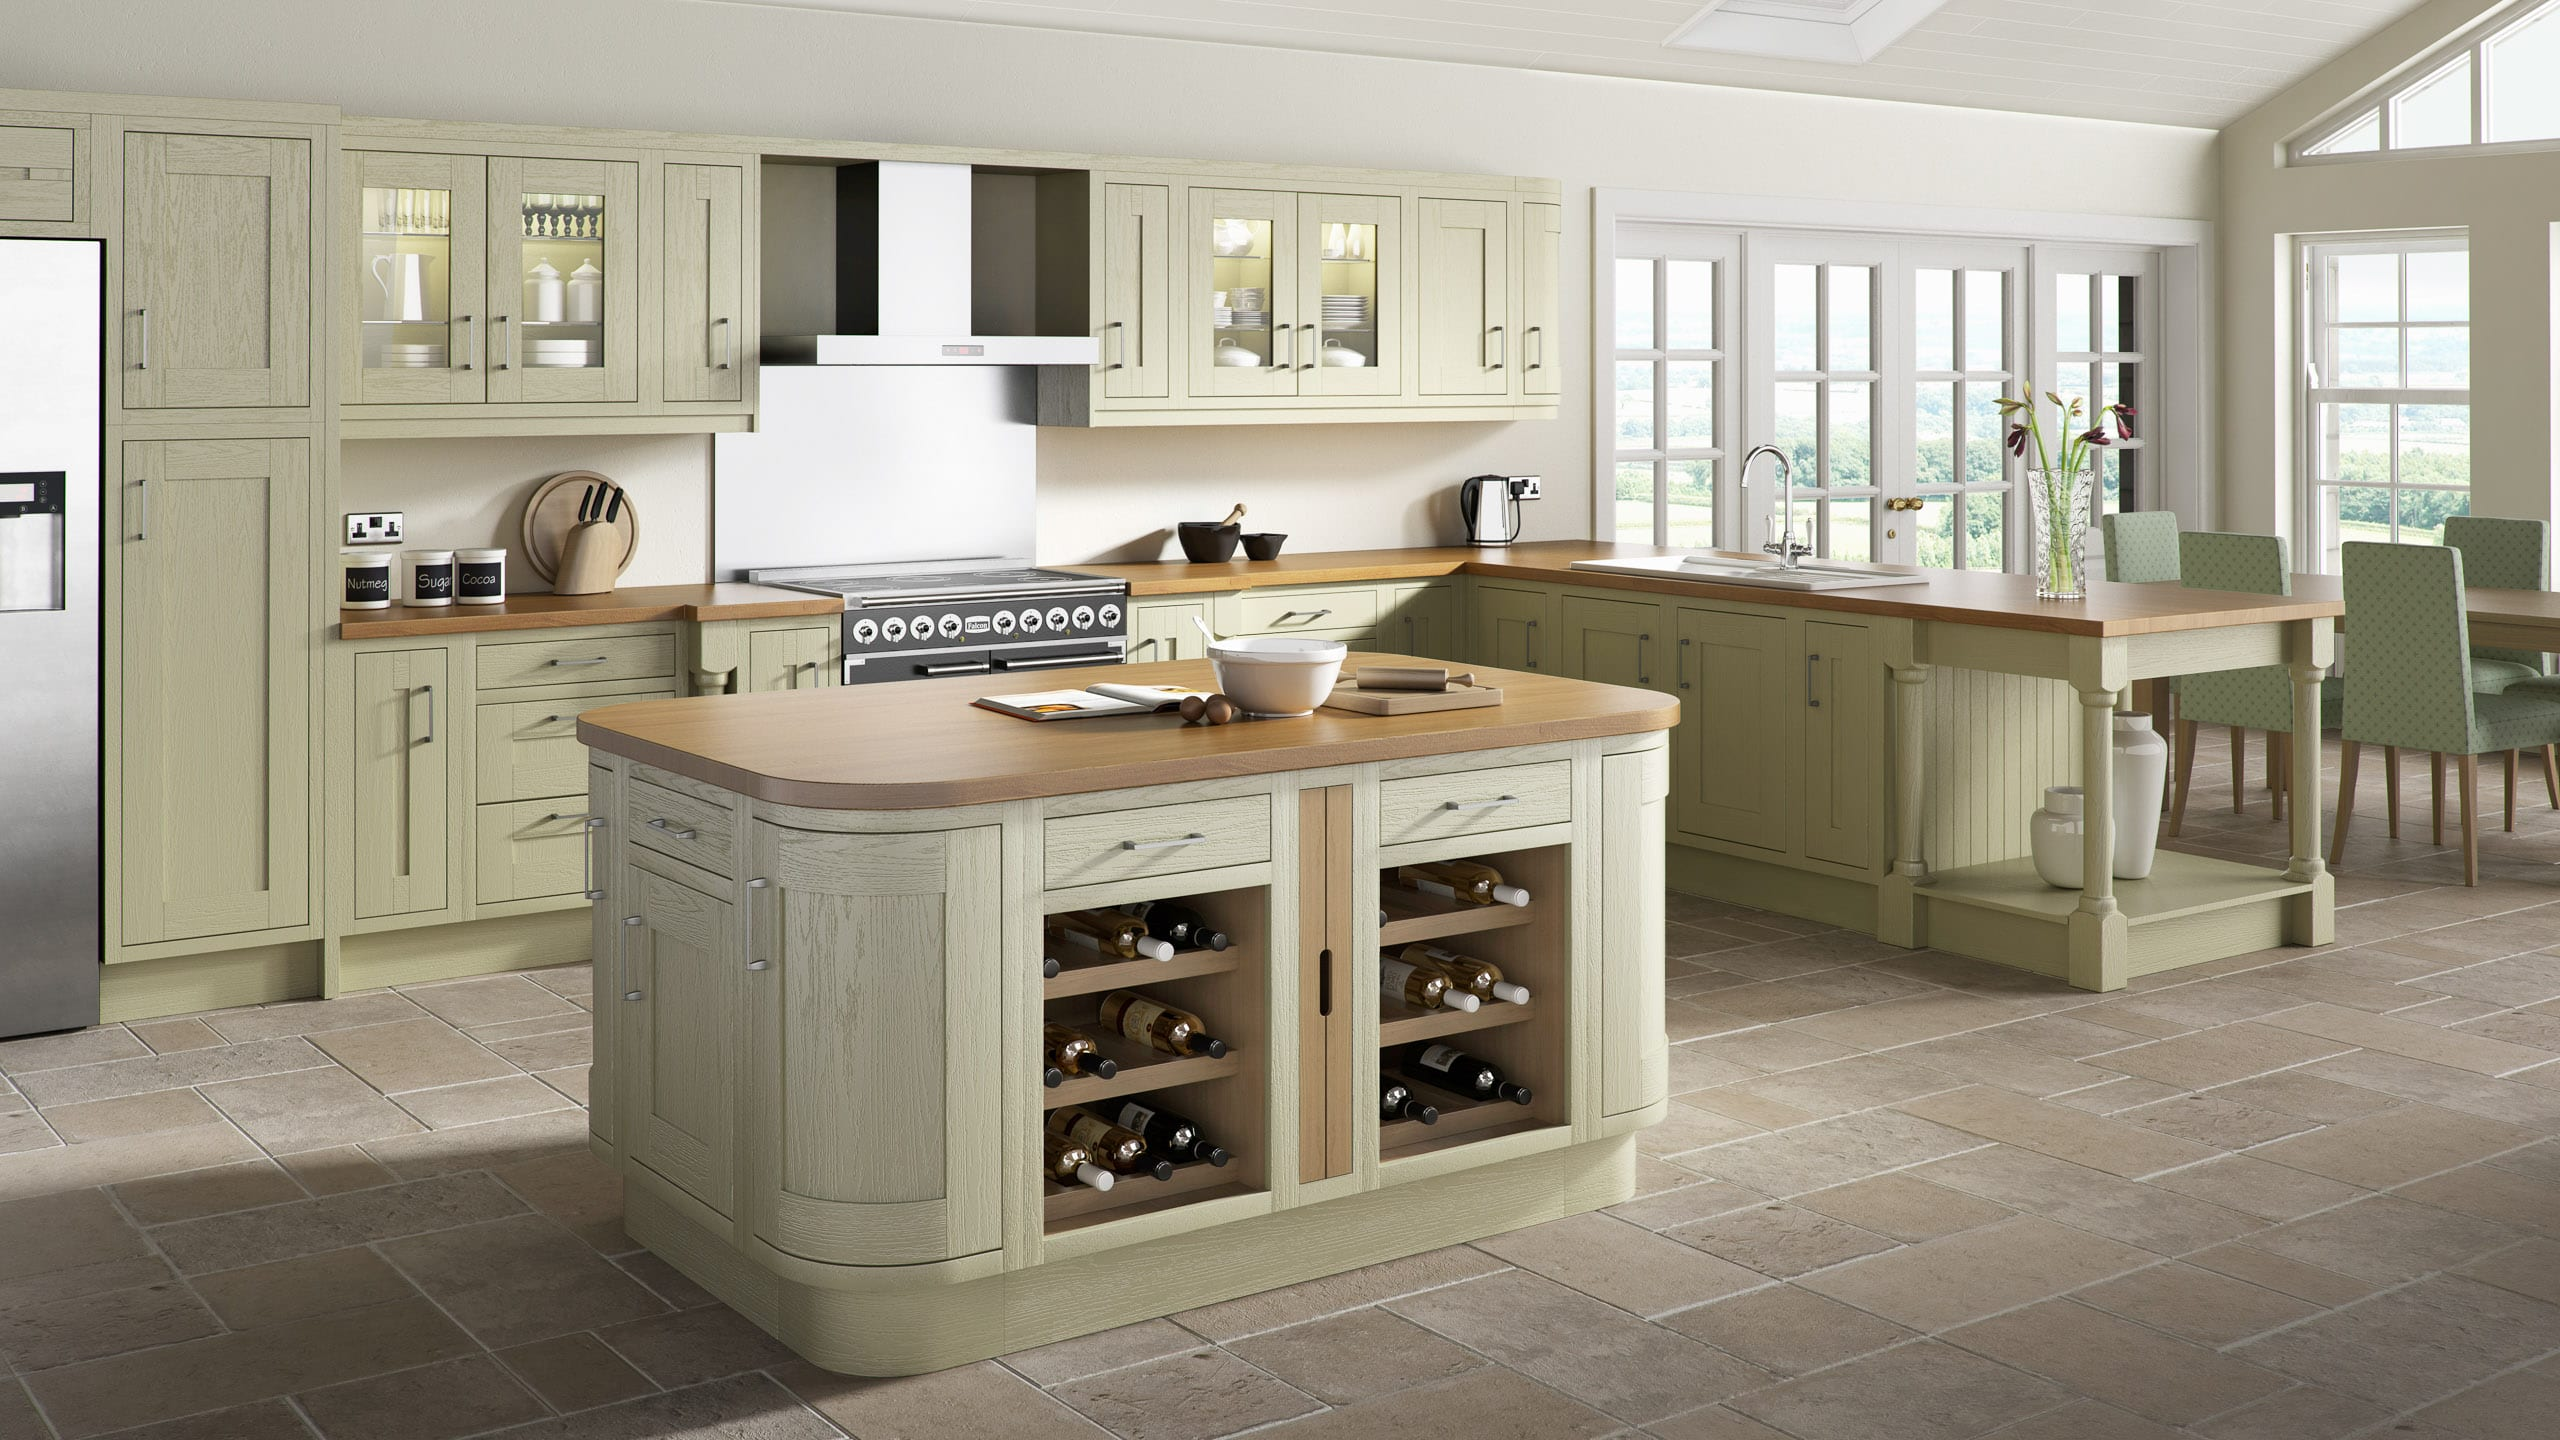 Wood Framed Painted Green - kitchen